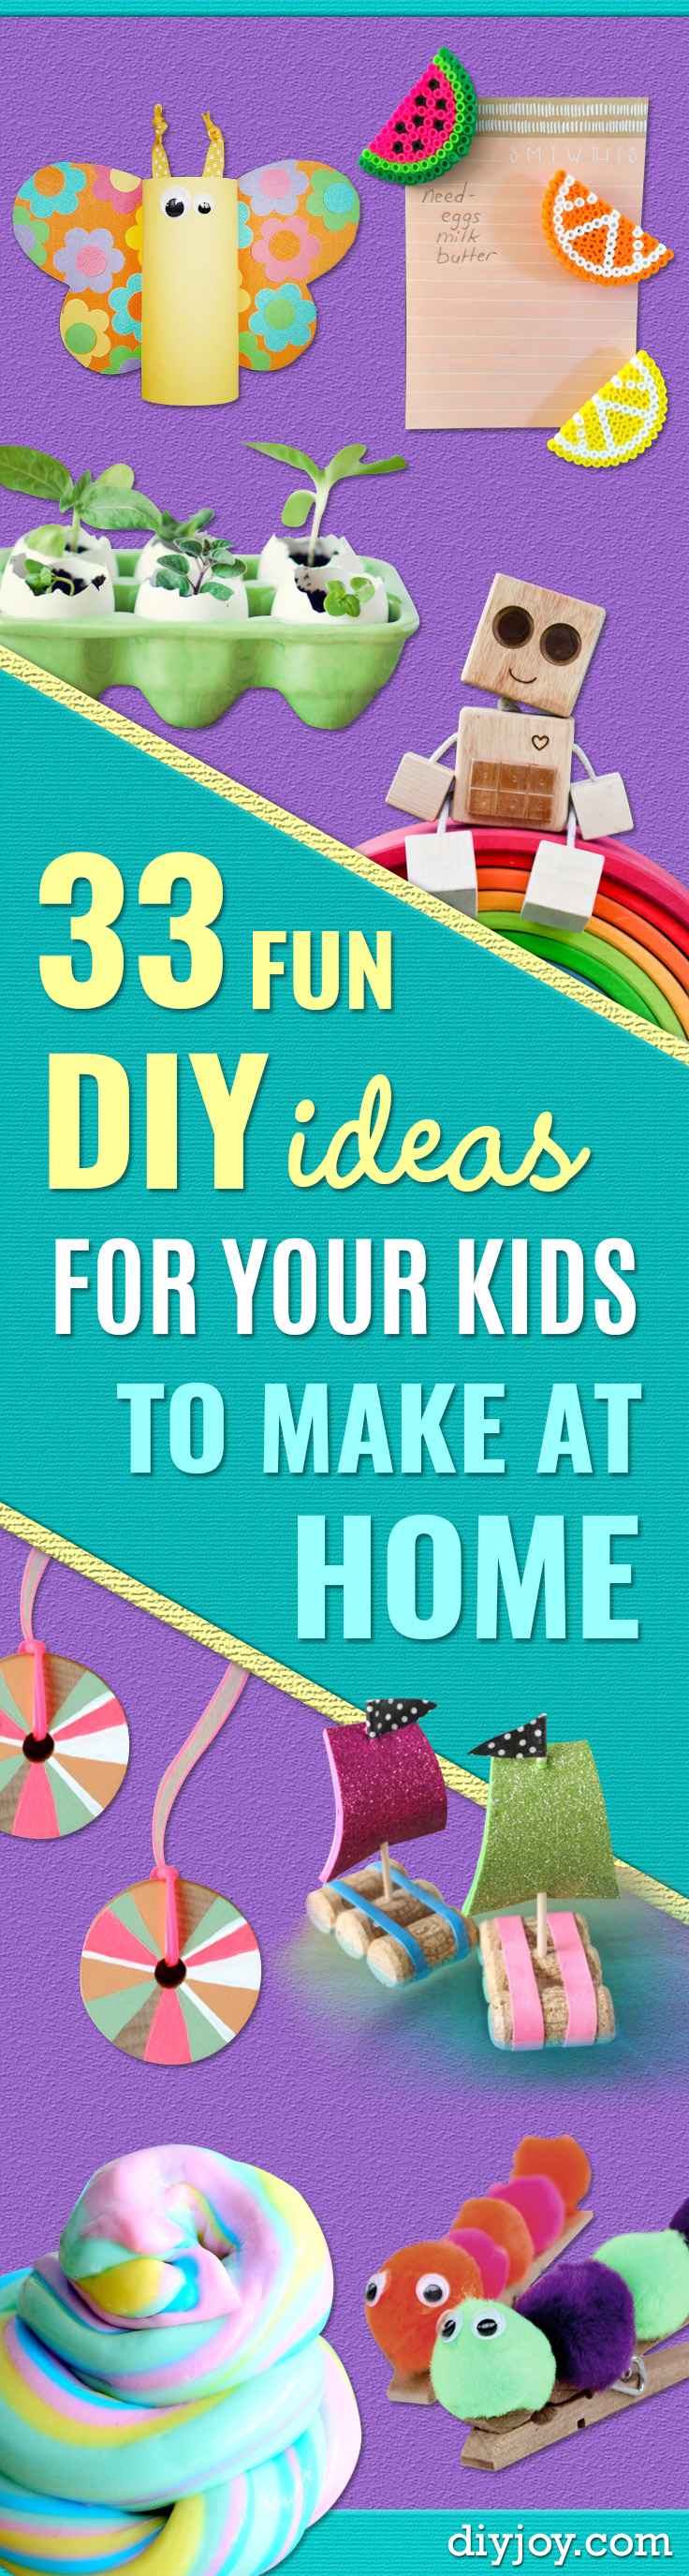 Craft Ideas for Children - Cute Paper Crafts, Fall and Winter Fun, Things For Toddlers, Babies, Boys and Girls to Make At Home #kidscrafts #kids #crafts